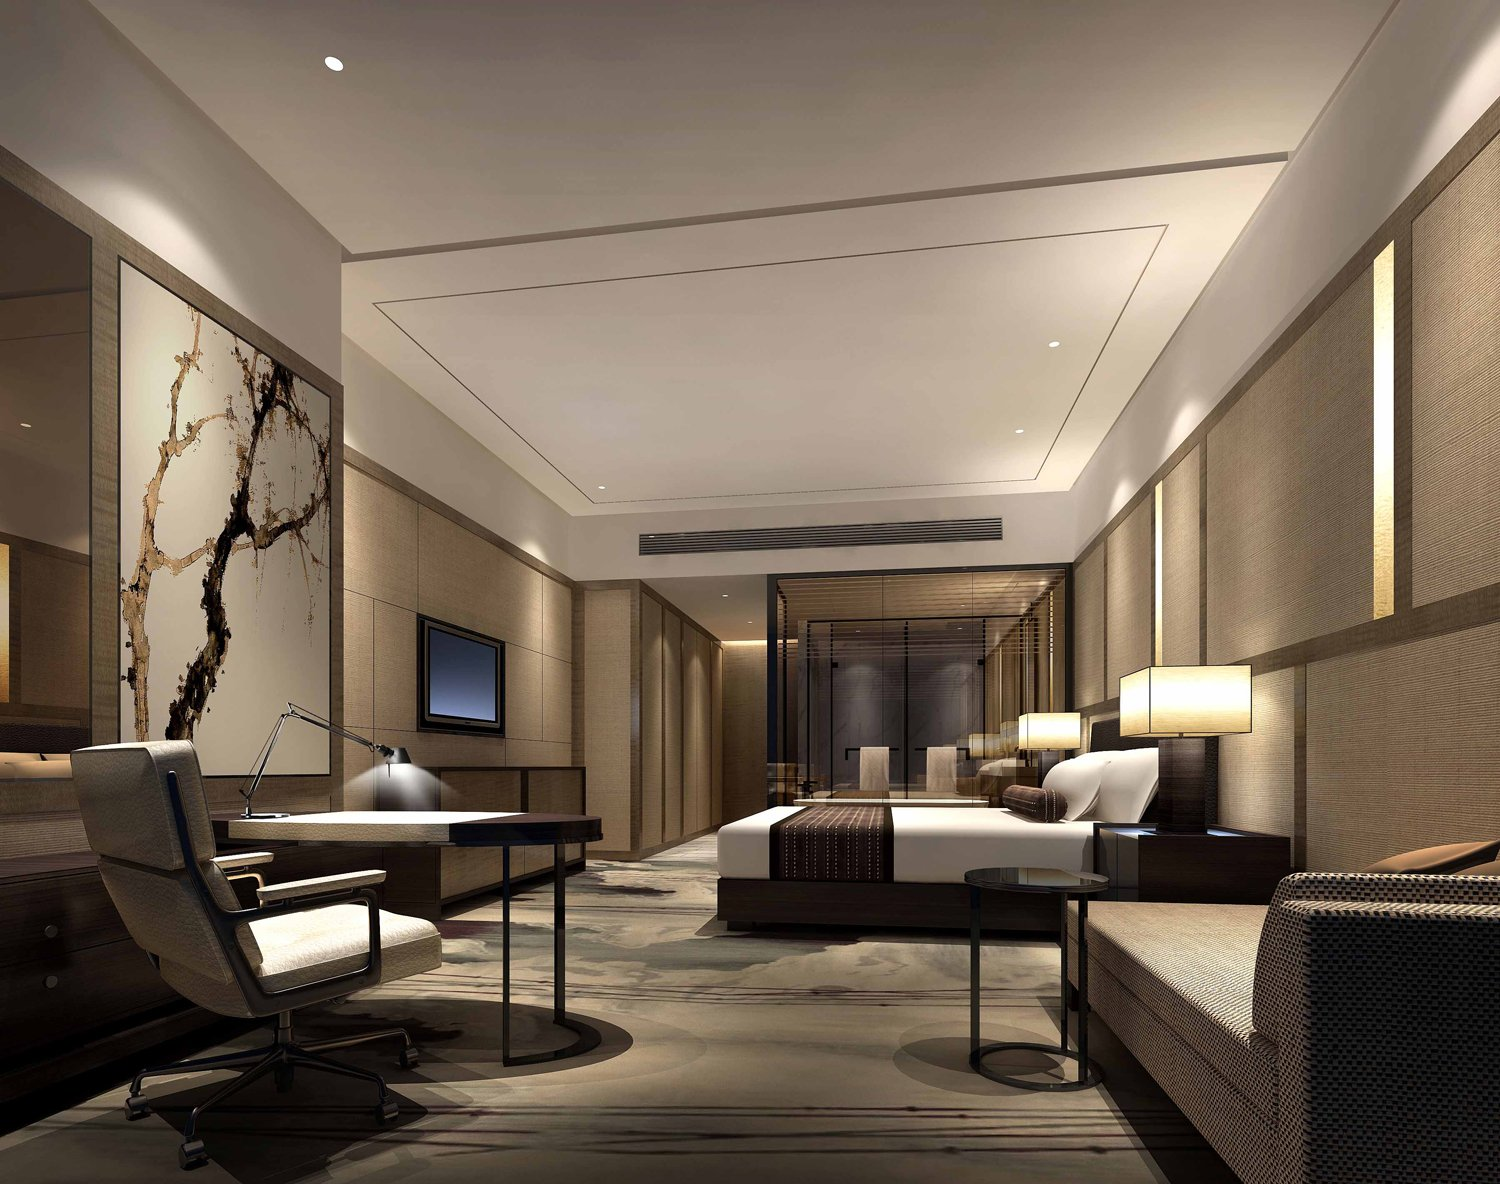 Hilton hotels resorts opens hotel in zhongshan china for Ideal hotel design 75014